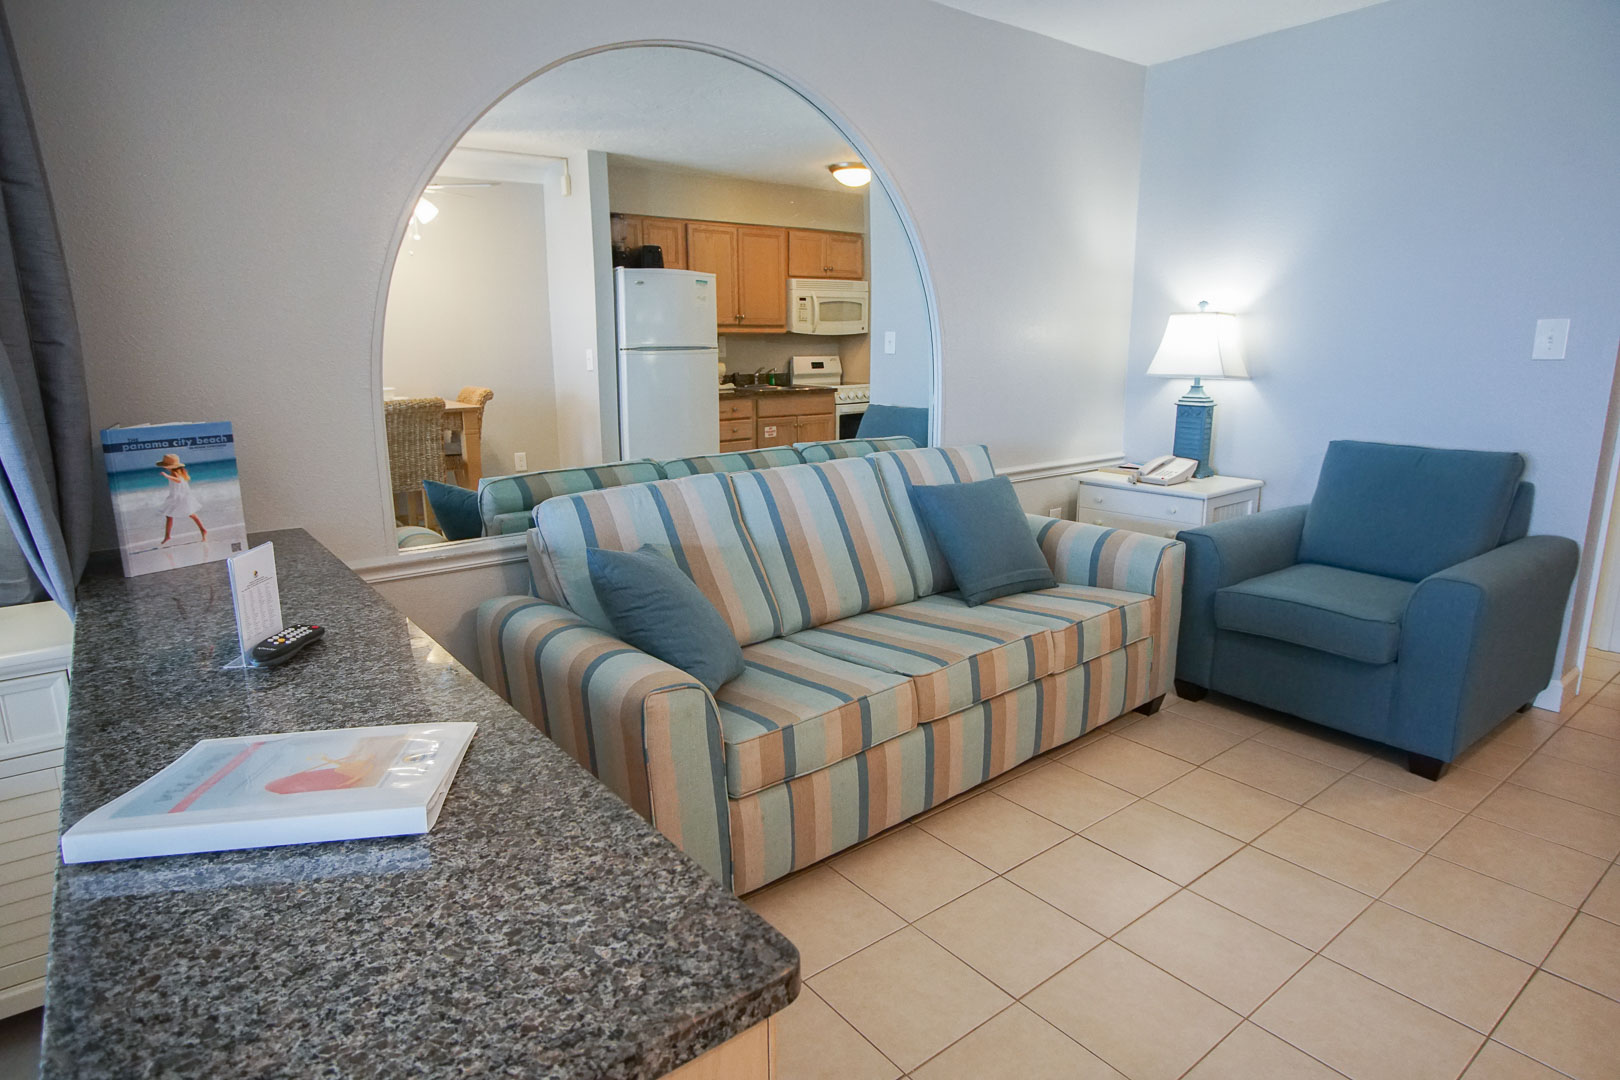 A cozy studio unit with a living room area at VRI's Panama City Resort & Club in Florida.